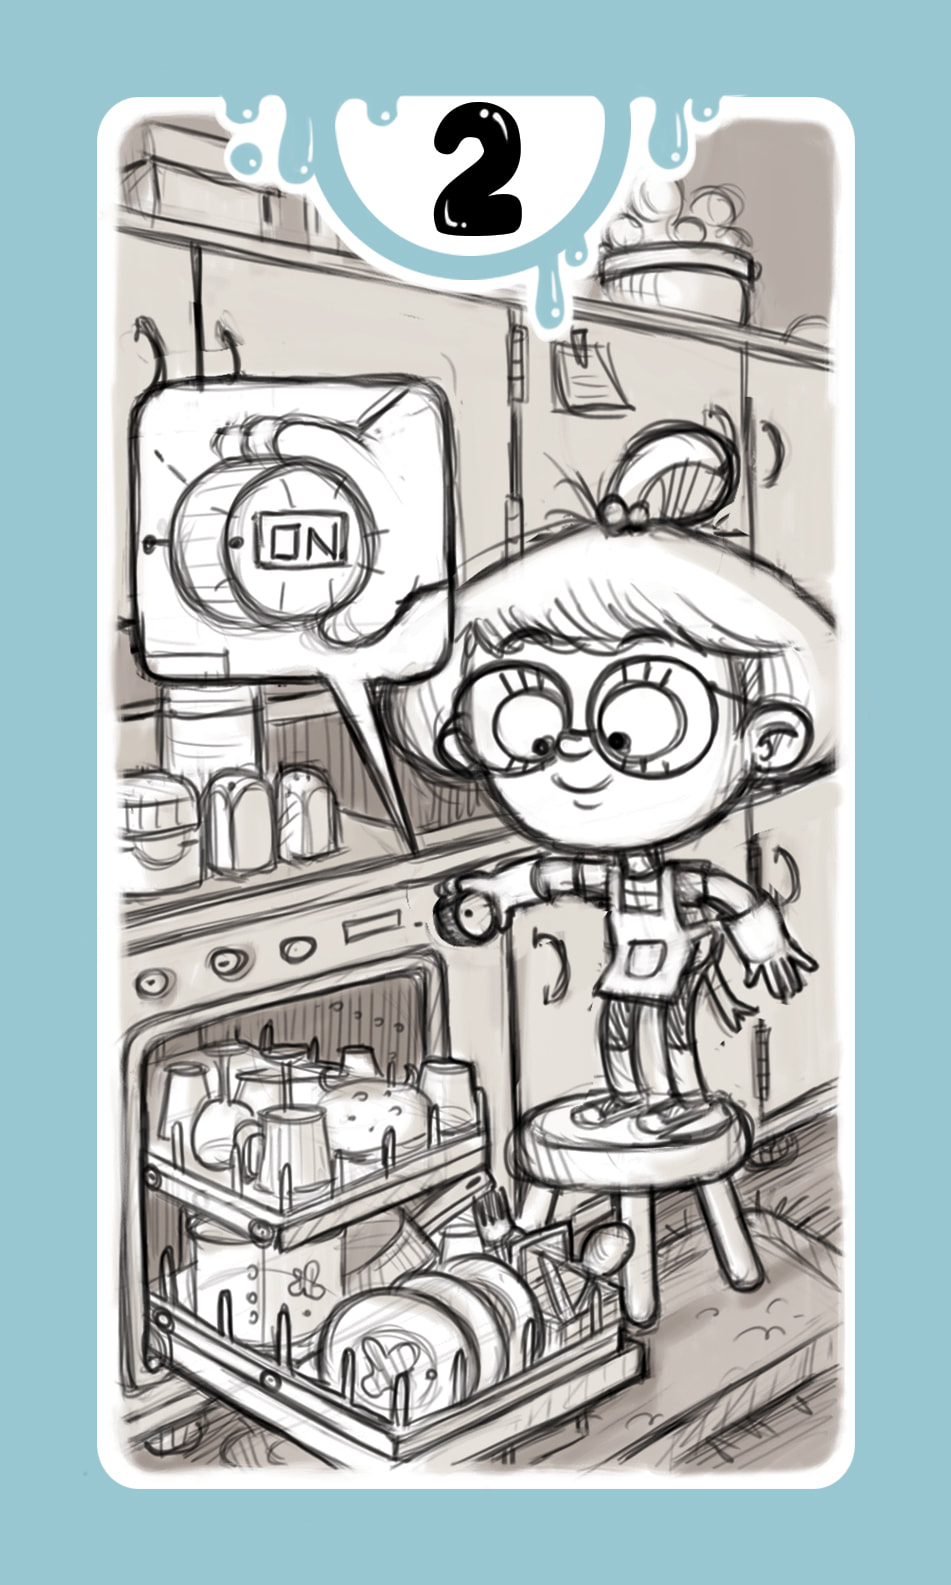 Black and white sketch of a card for the board game DROP! with a light blue frame and a girl turning on a full dishwasher in a kitchen